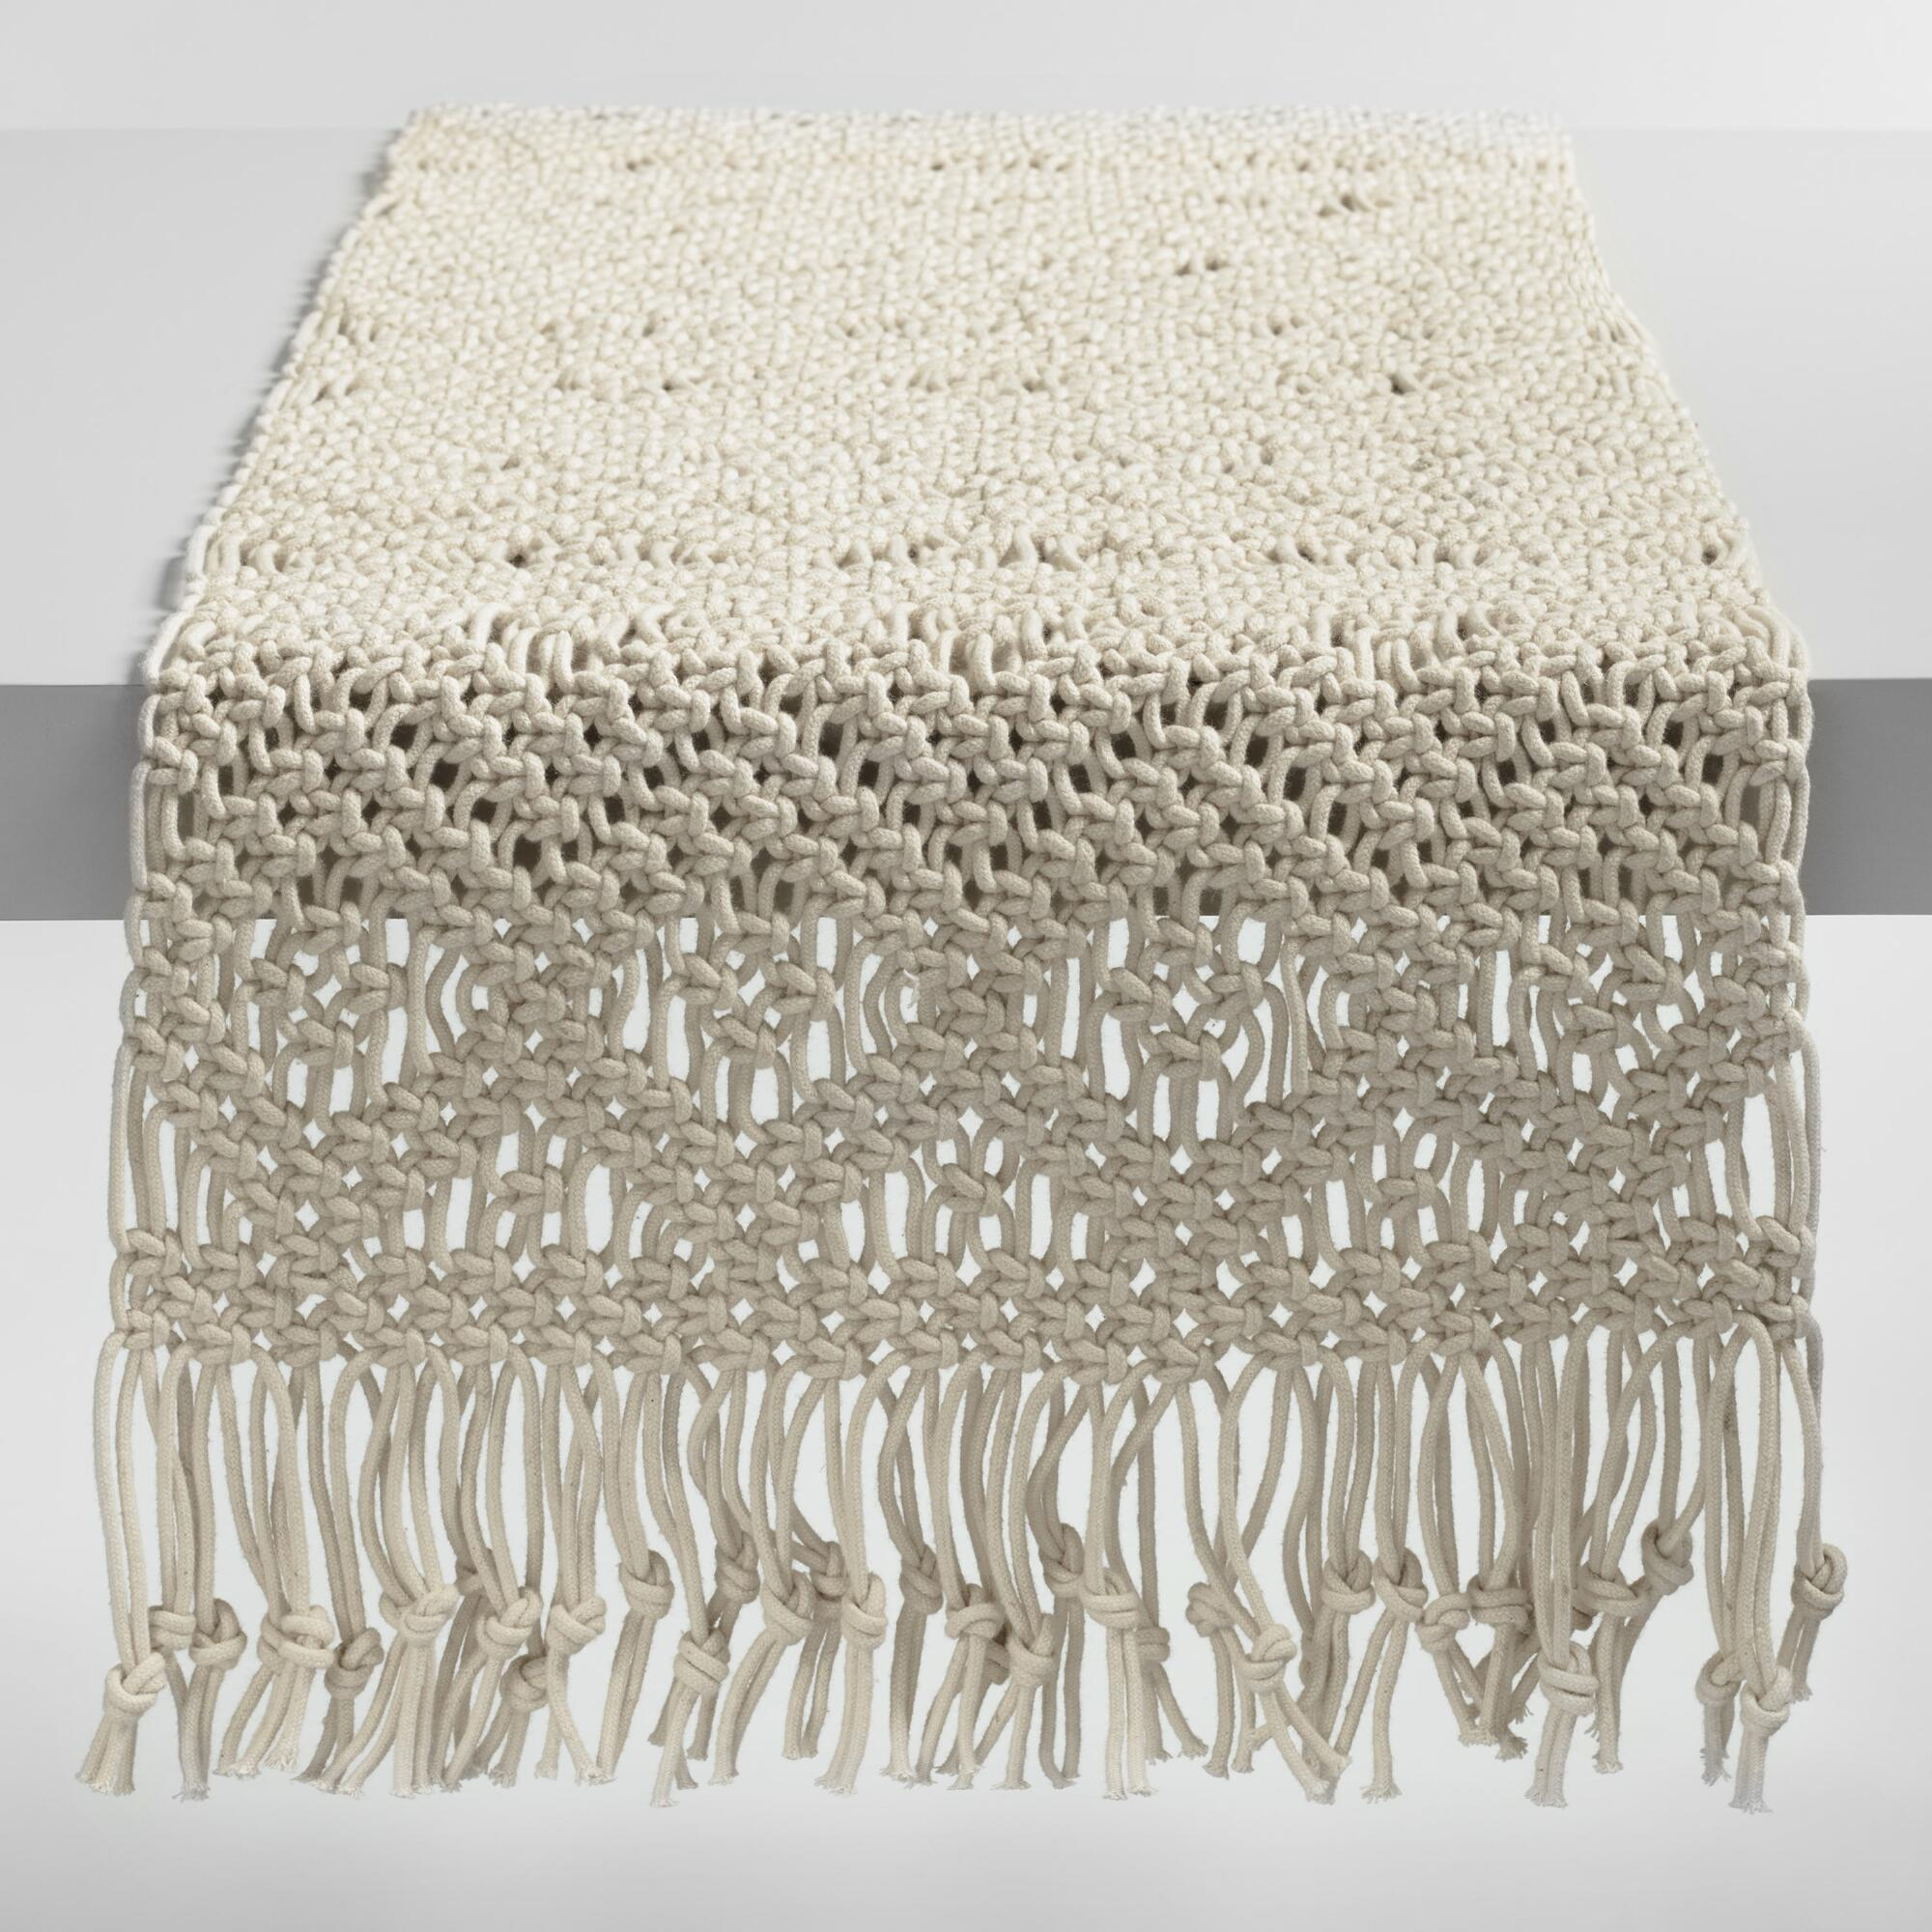 tablecloths table runners world market iipsrv fcgi tablecloth for inch round accent natural macrame runner modern outdoor chairs kmart desk lamp foyer chest furniture mirror side